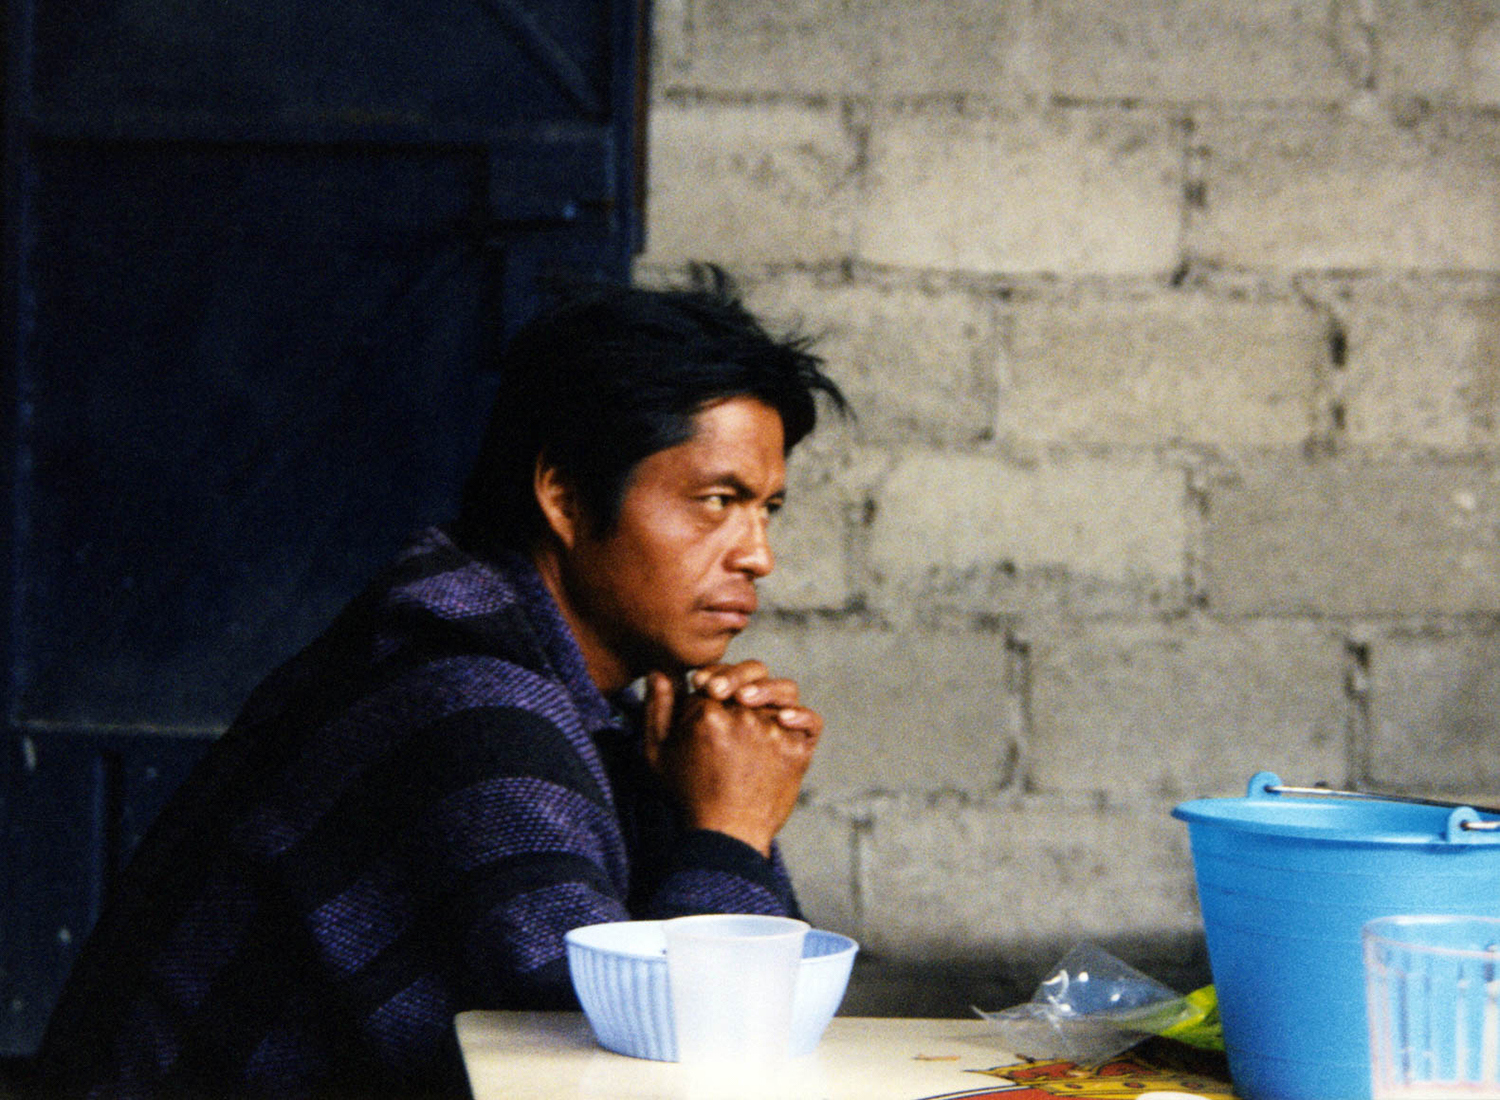 <p>A man thinks while drinking pulque, a traditional Mesoamerican indigenous drink made from the maguey plant.</p>